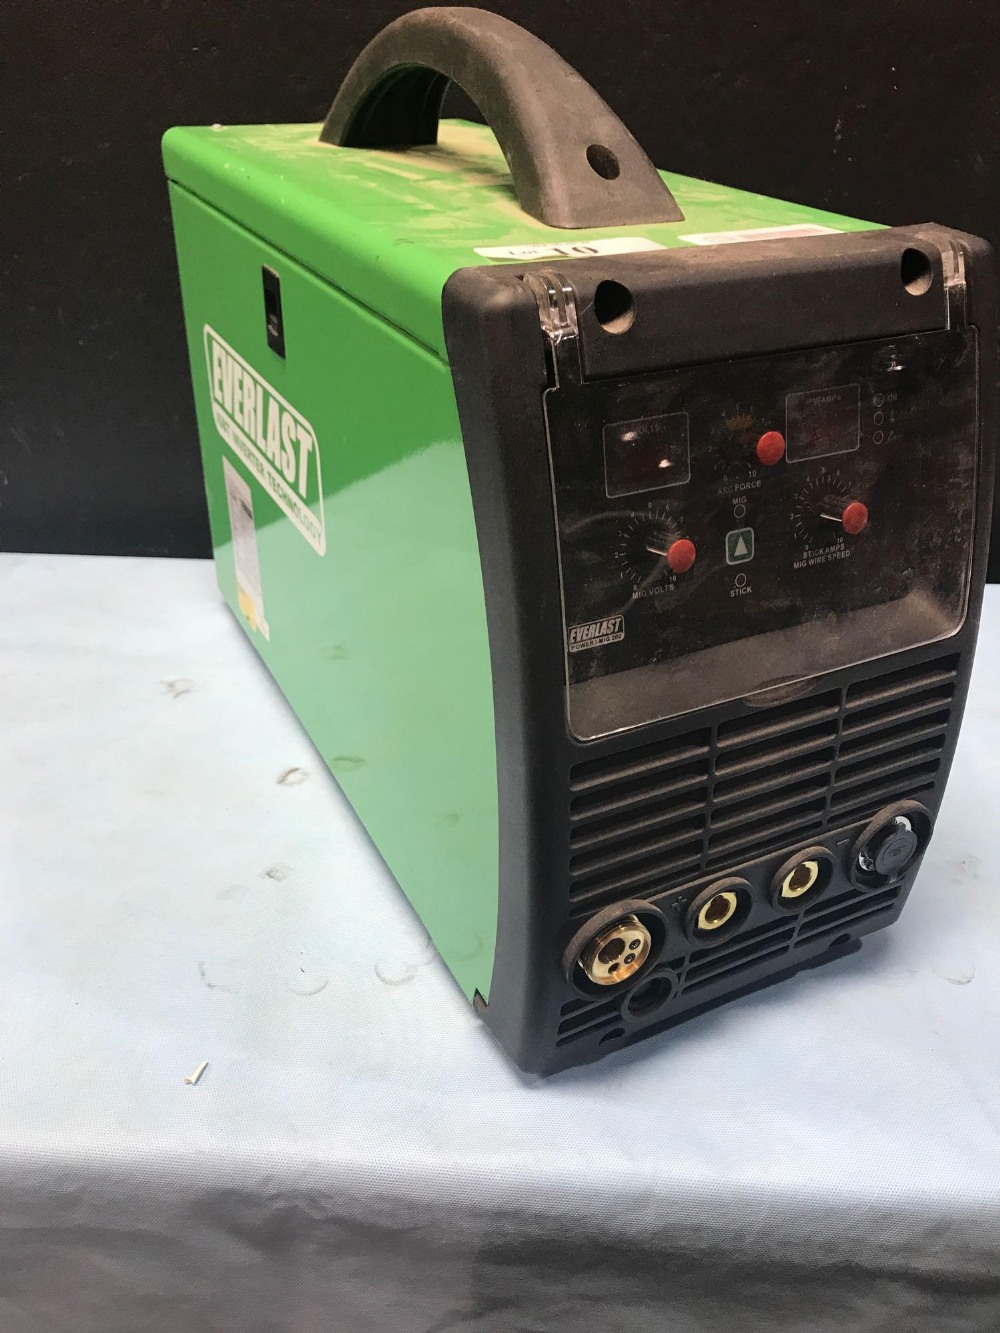 Lot 10 - EVERLAST IGBT INVERTER TECHNOLOGY - POWER I-TIG 200 WELDER